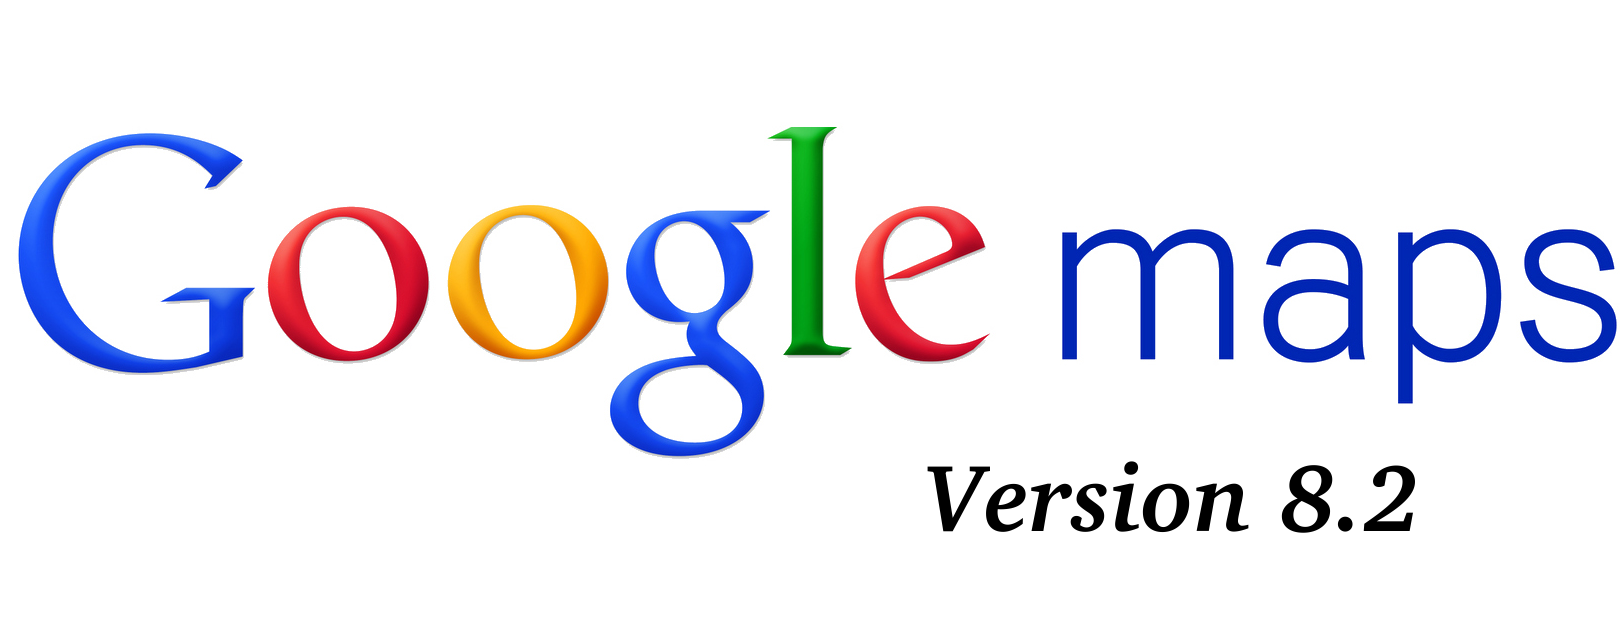 Google Maps version 8.2 is out, download and install it now ... on download icons, topographic maps, download london tube map, online maps, download business maps, download bing maps,